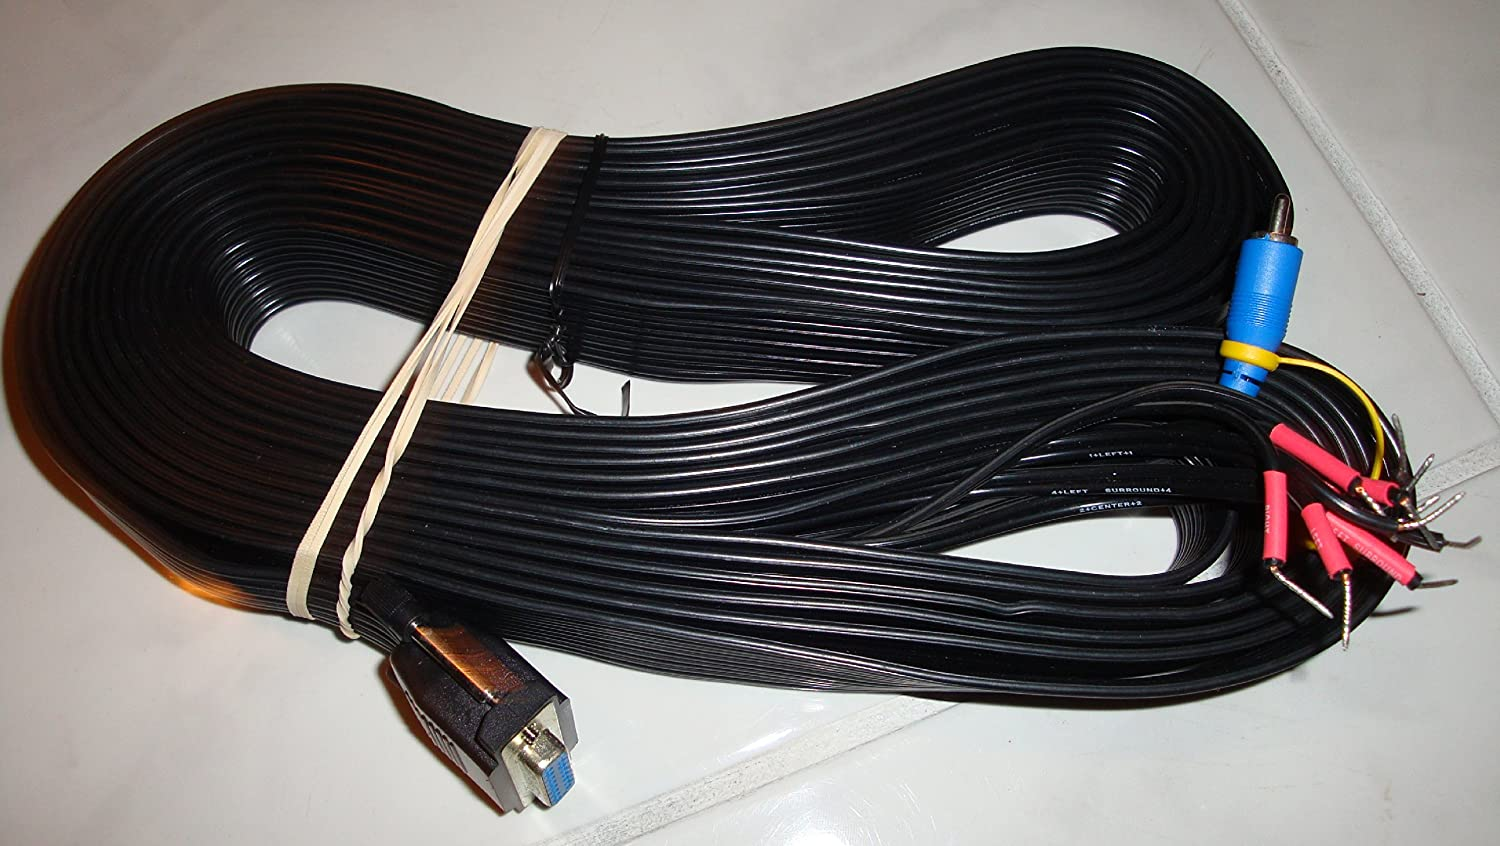 91VP4Uej%2BCL._SL1500_ amazon com bose audio cable 15 pin from subwoofer to receiver  at arjmand.co